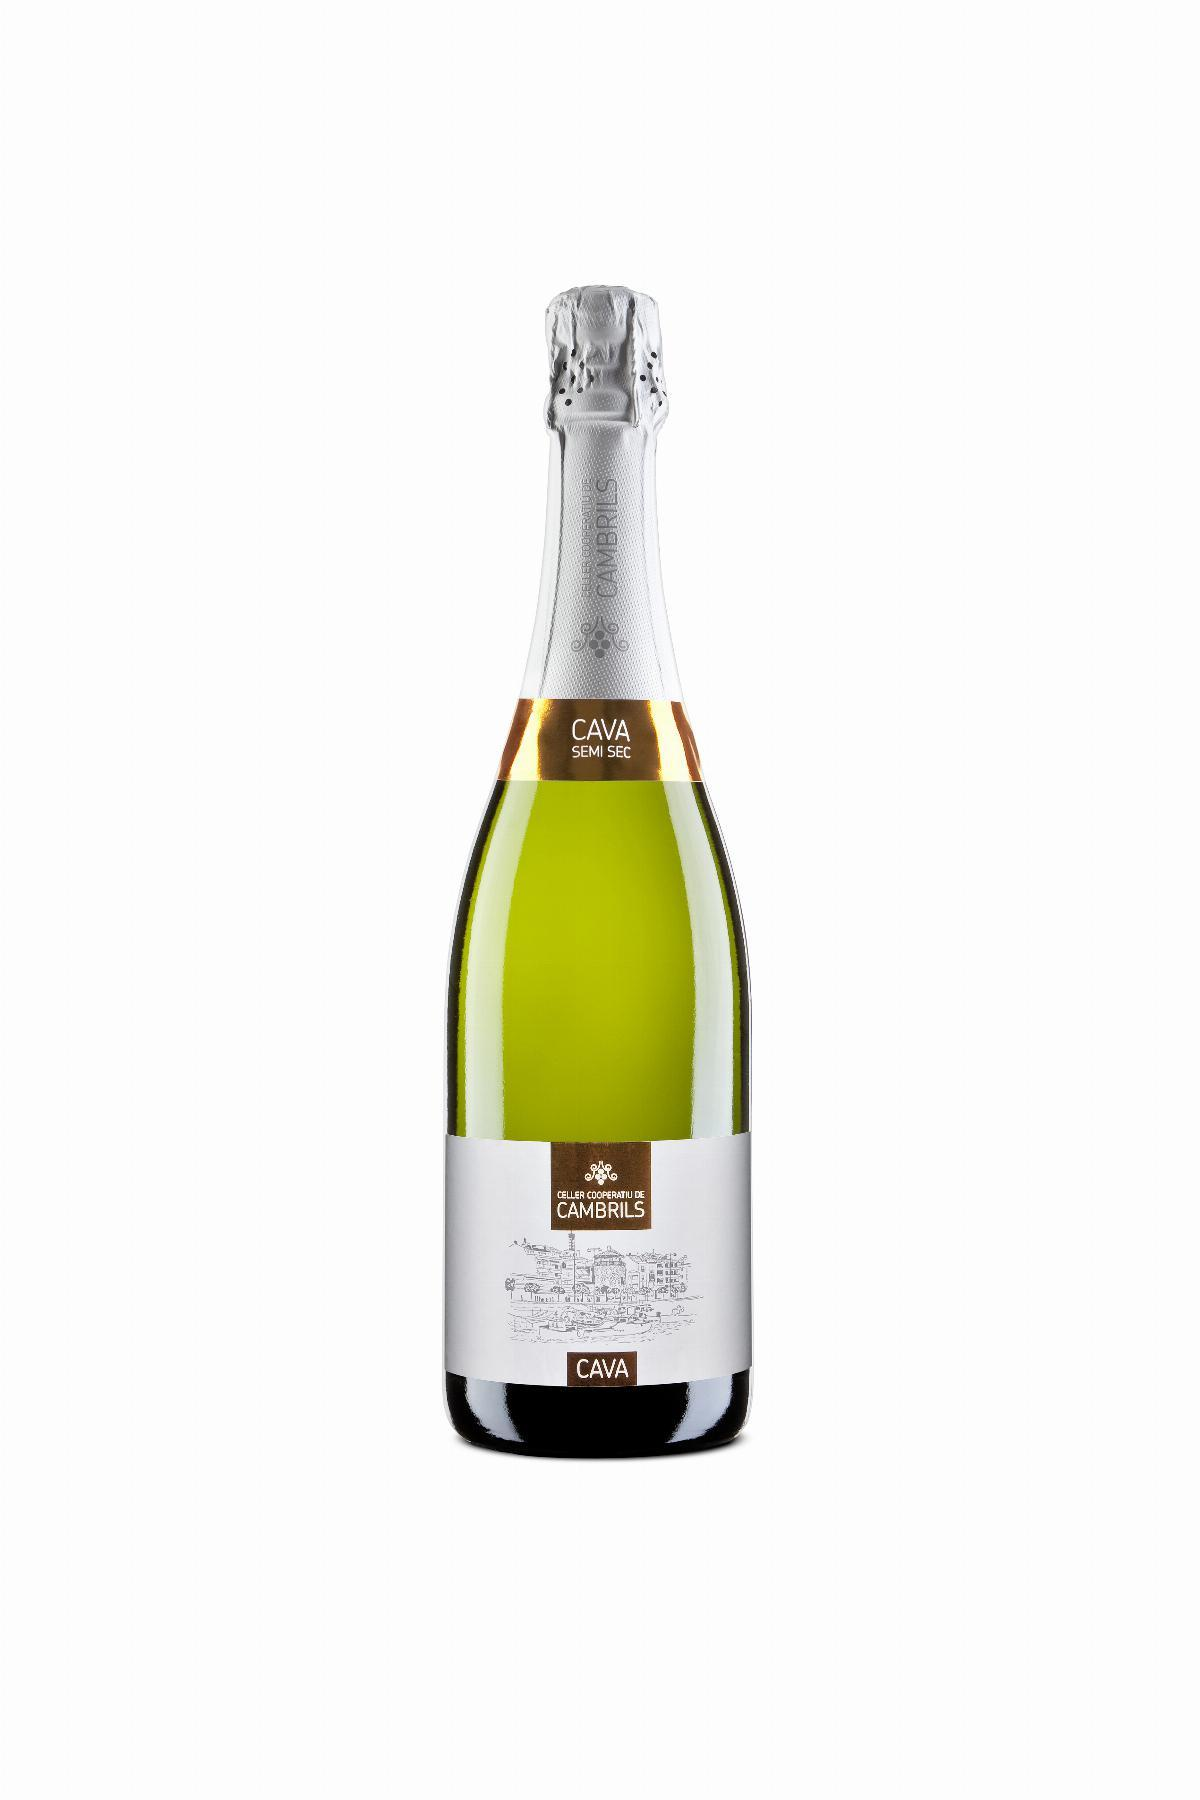 Cava Celler Cooperatiu Cambrils Semi-Sec, 750ml, CAT